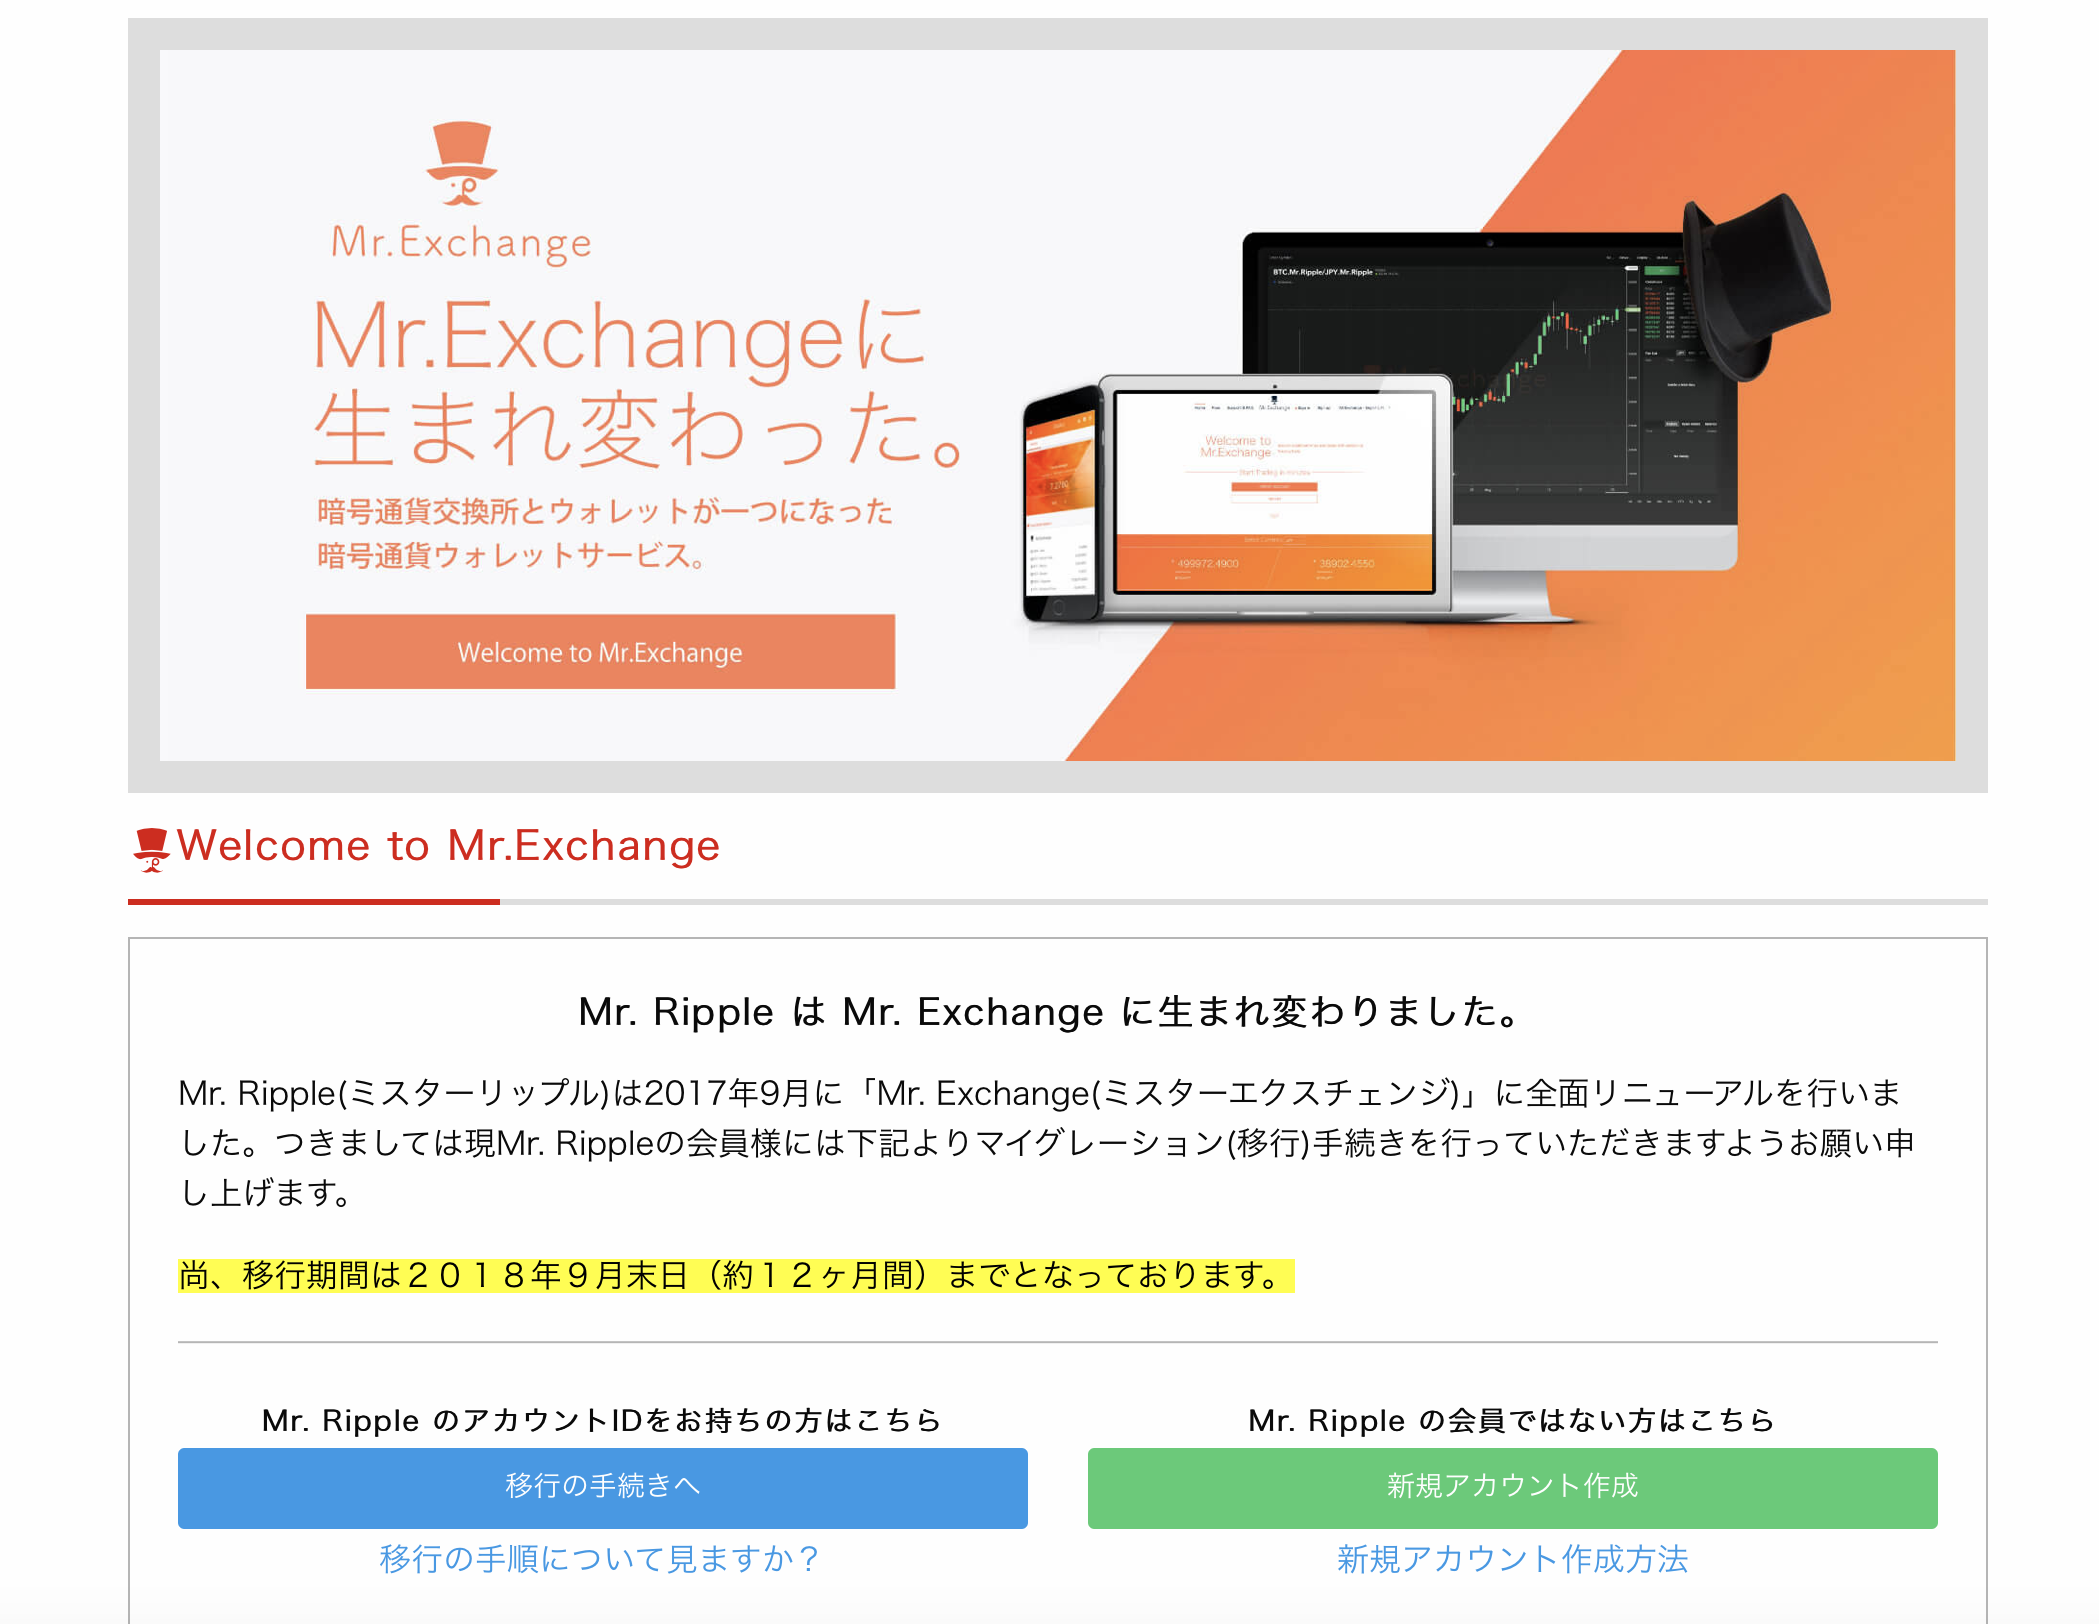 Mr. Exchange